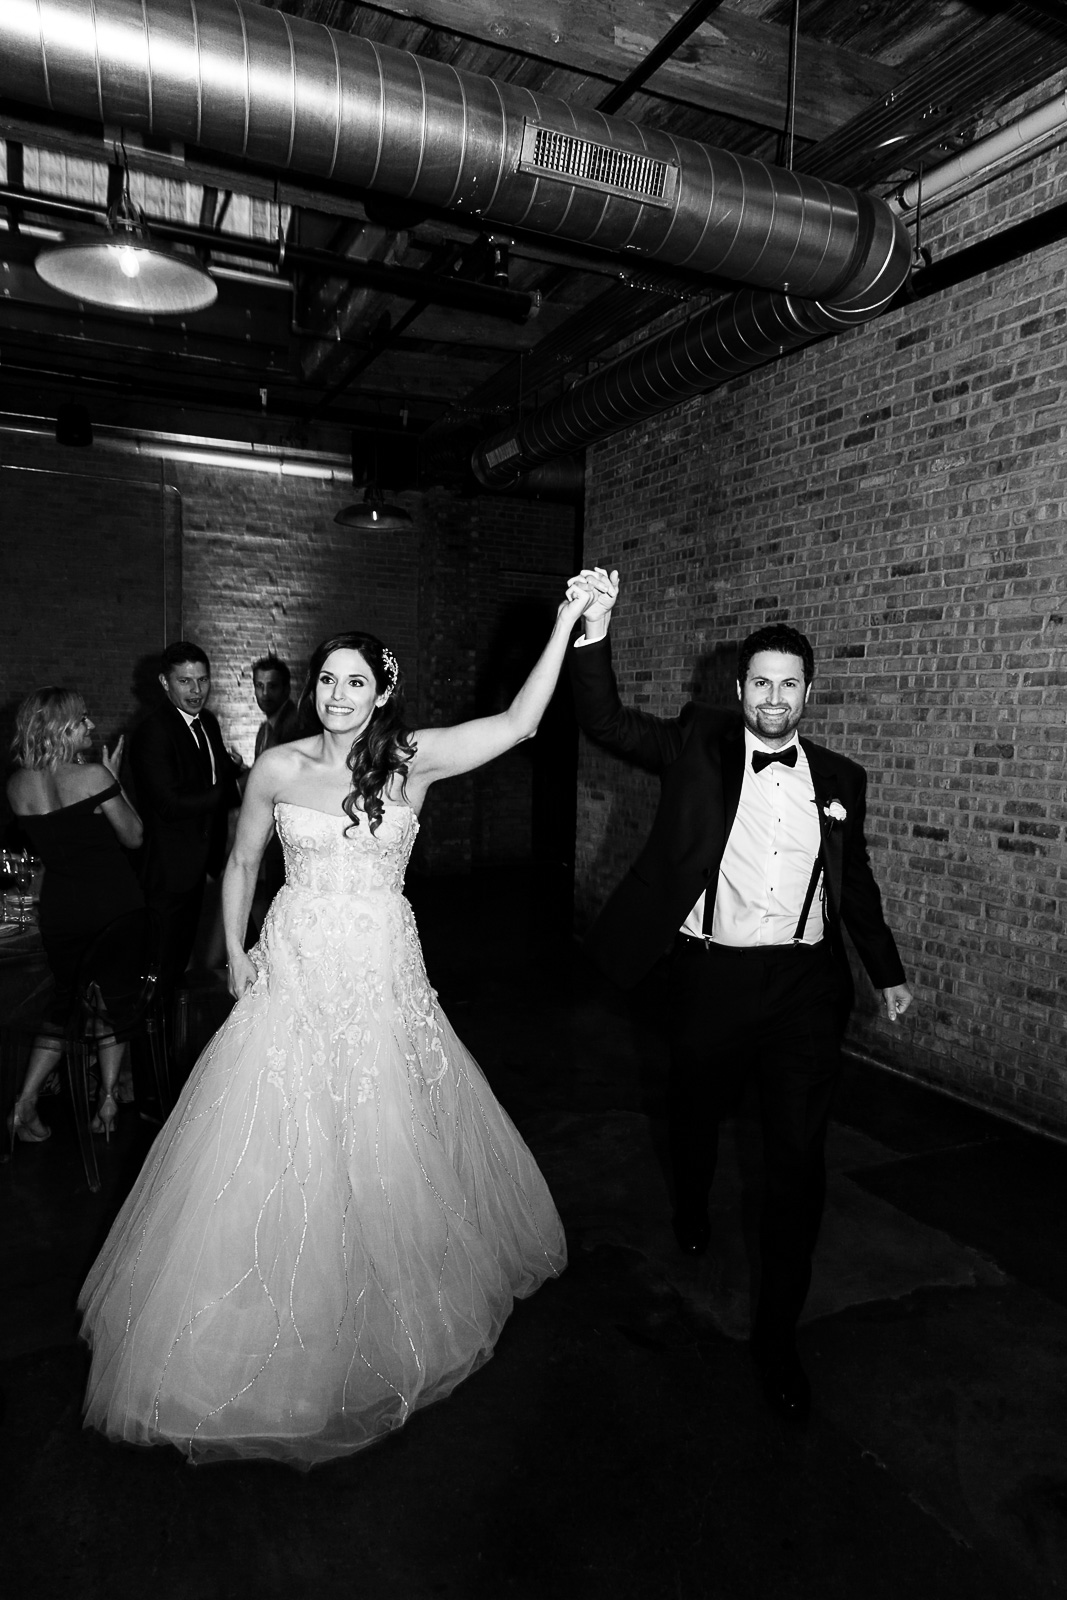 Timeless high end wedding photography captures honesty in all the moments of a wedding day.